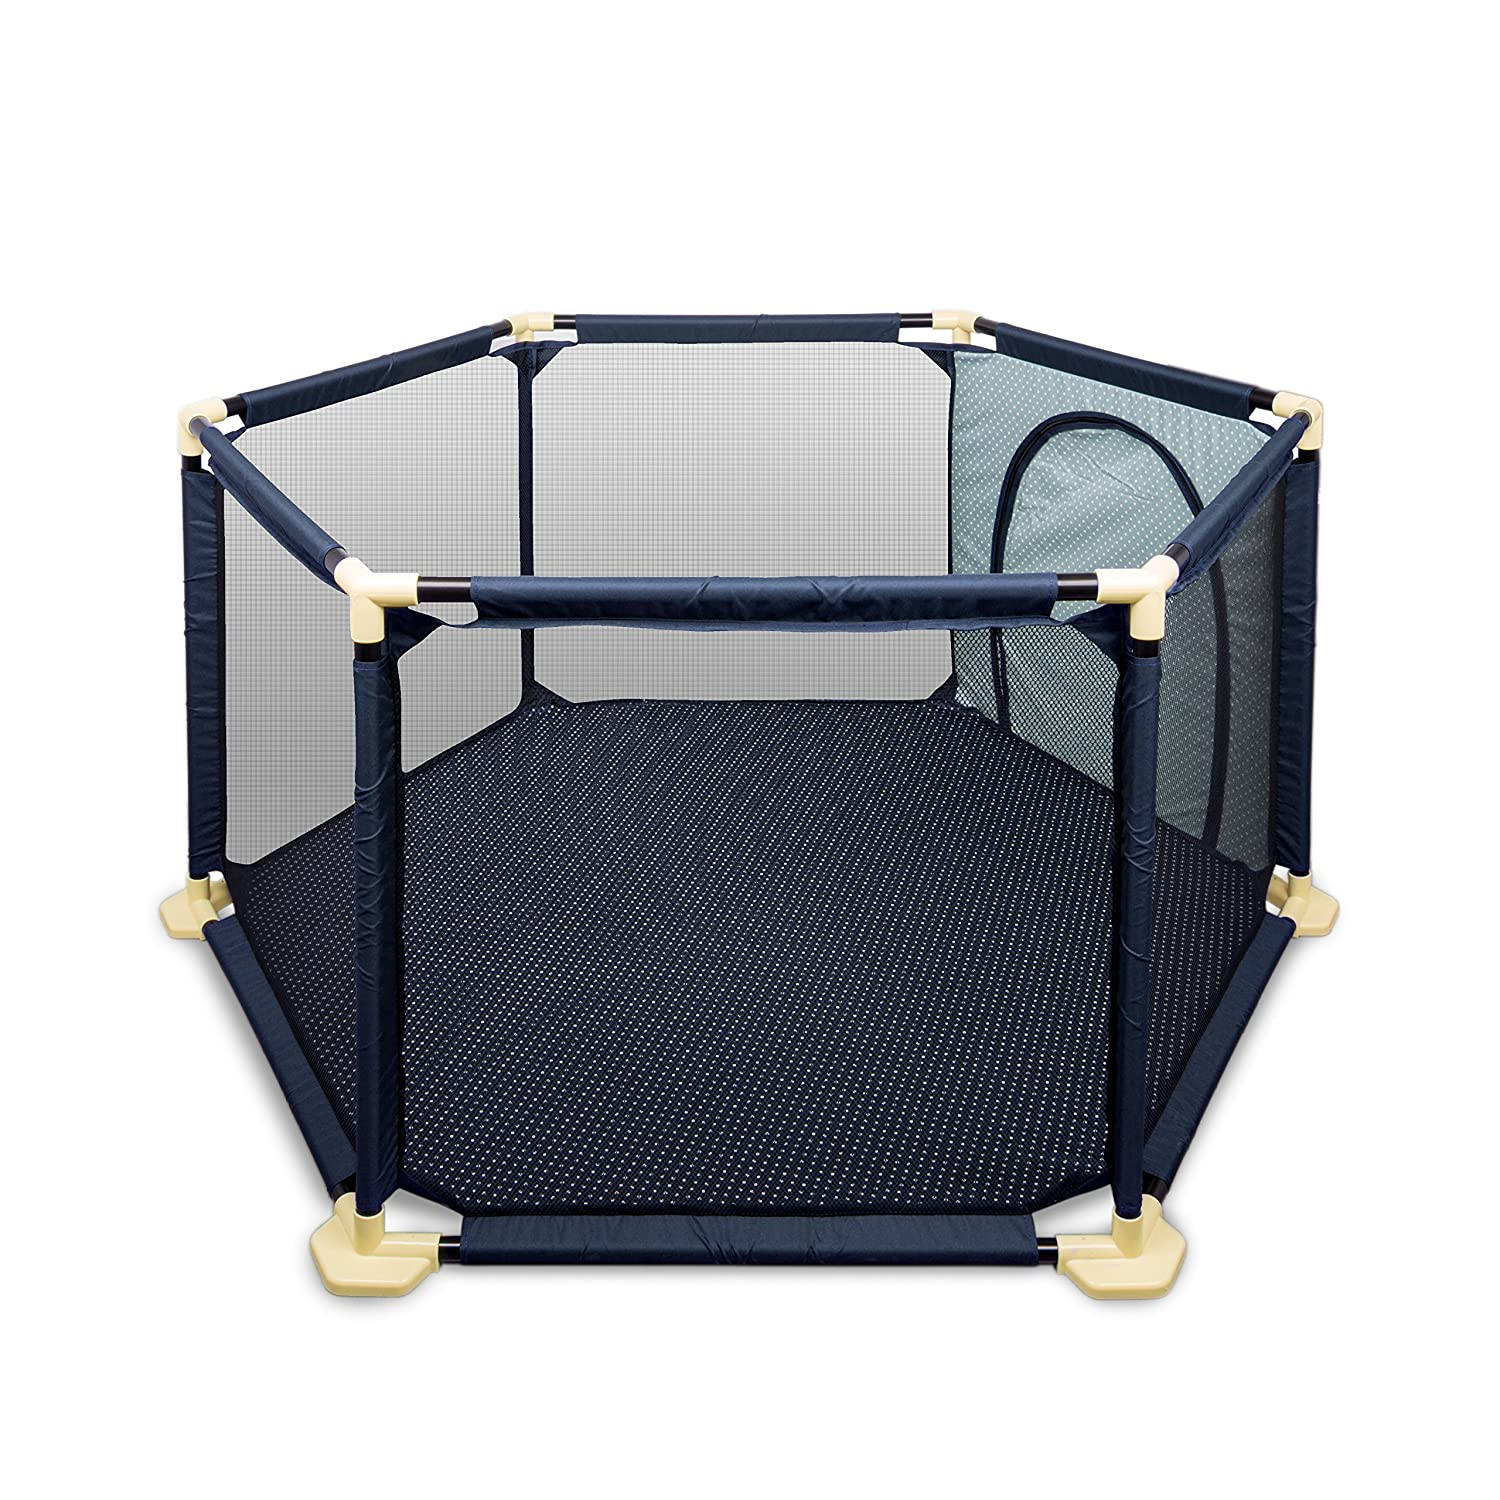 BIGWING Style Baby Playpen Foldable Baby Kids Play pens 6 Panel Kids Activity Center Room Fitted Floor Mats-66.5 x 148 cm-Blue